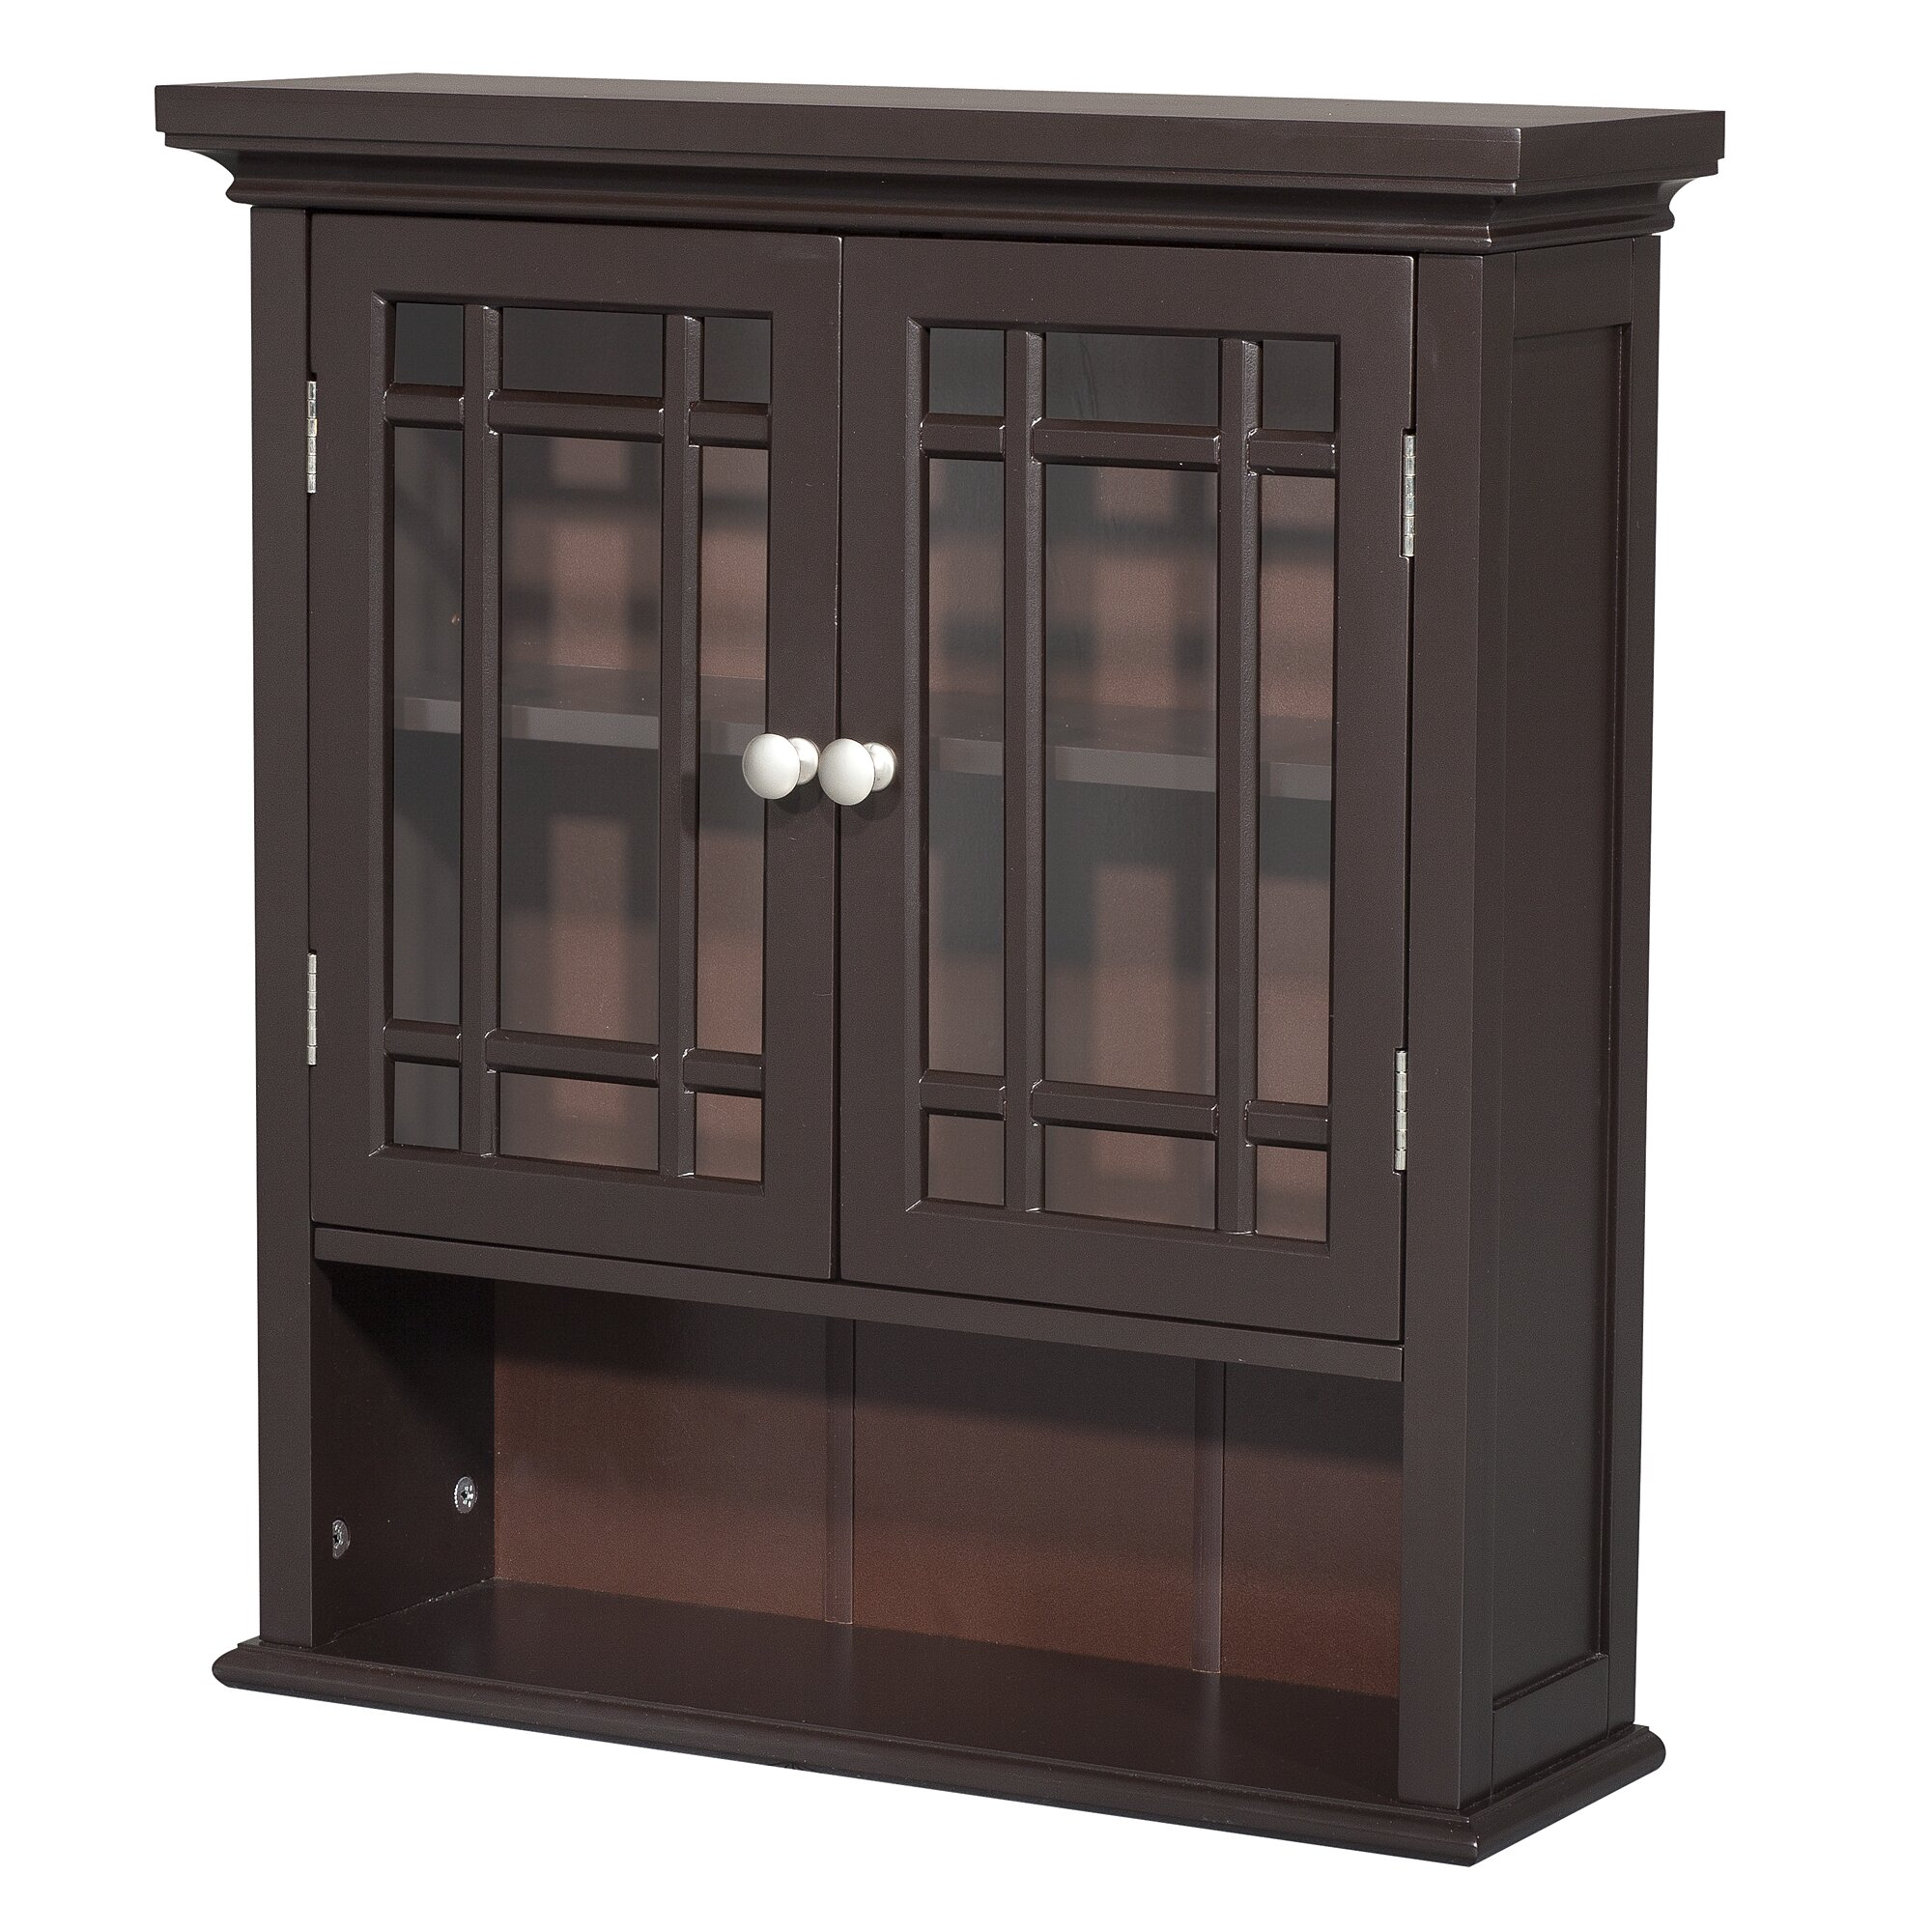 elegant home fashions neal 22 x 24 wall mounted cabinet. Black Bedroom Furniture Sets. Home Design Ideas